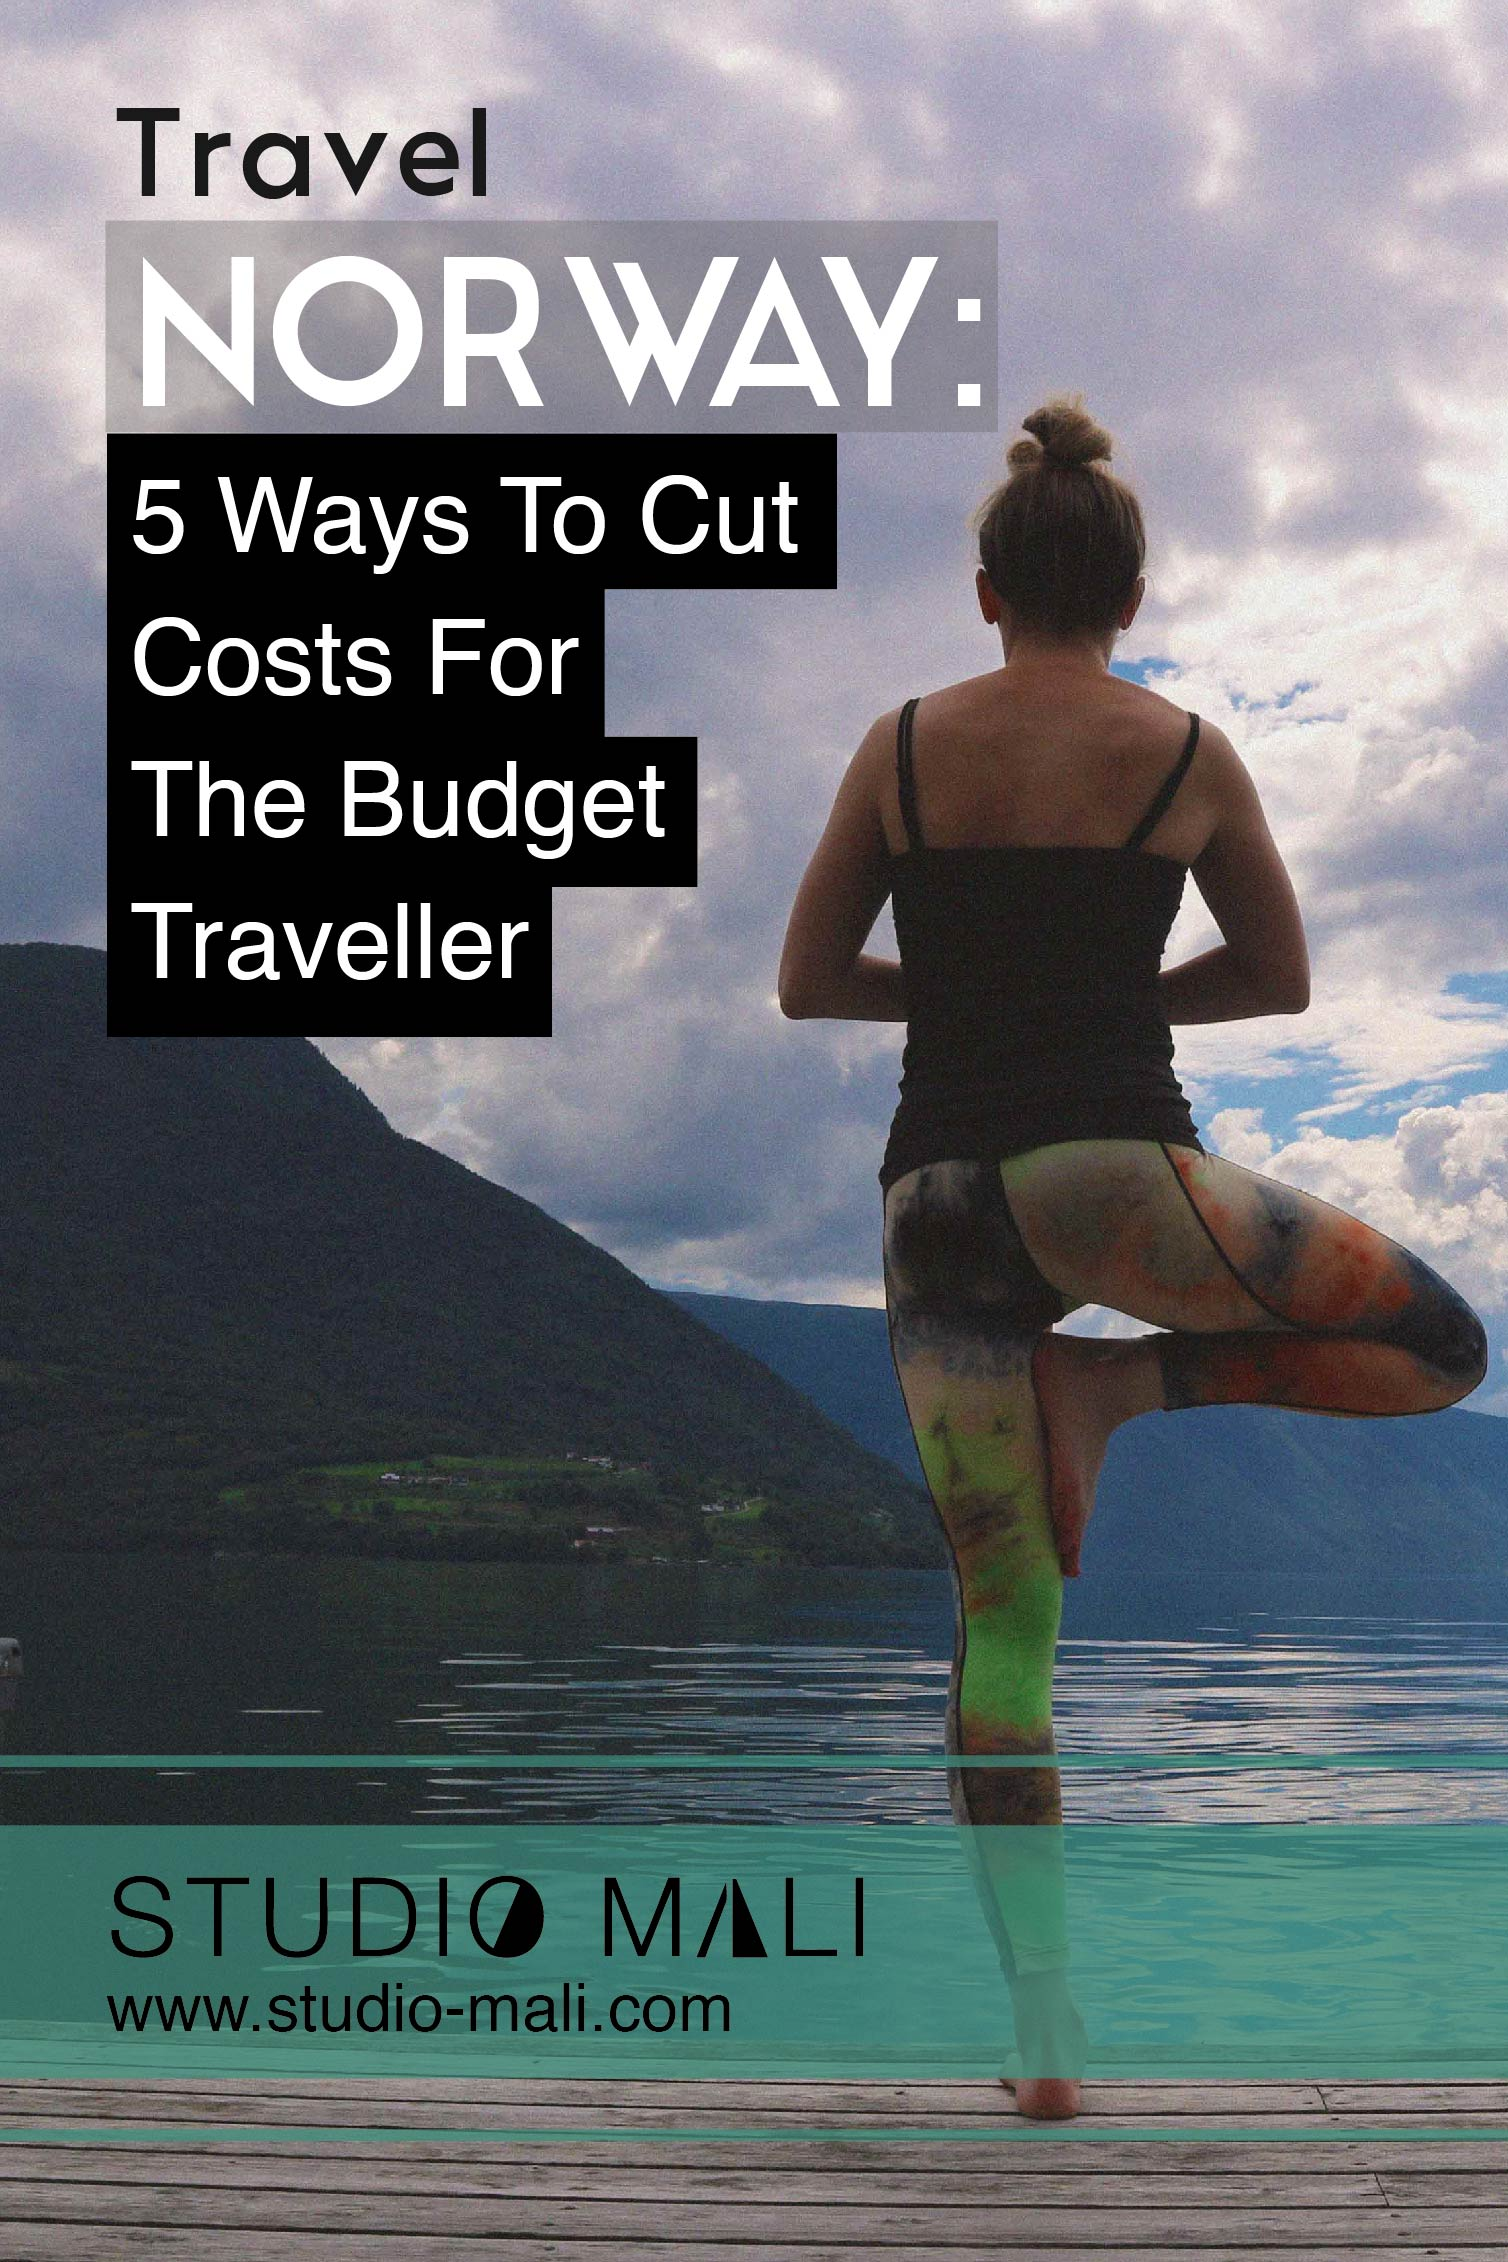 Norway - 5 Ways To Cut Costs For The Budget Traveller, by Studio Mali.jpg